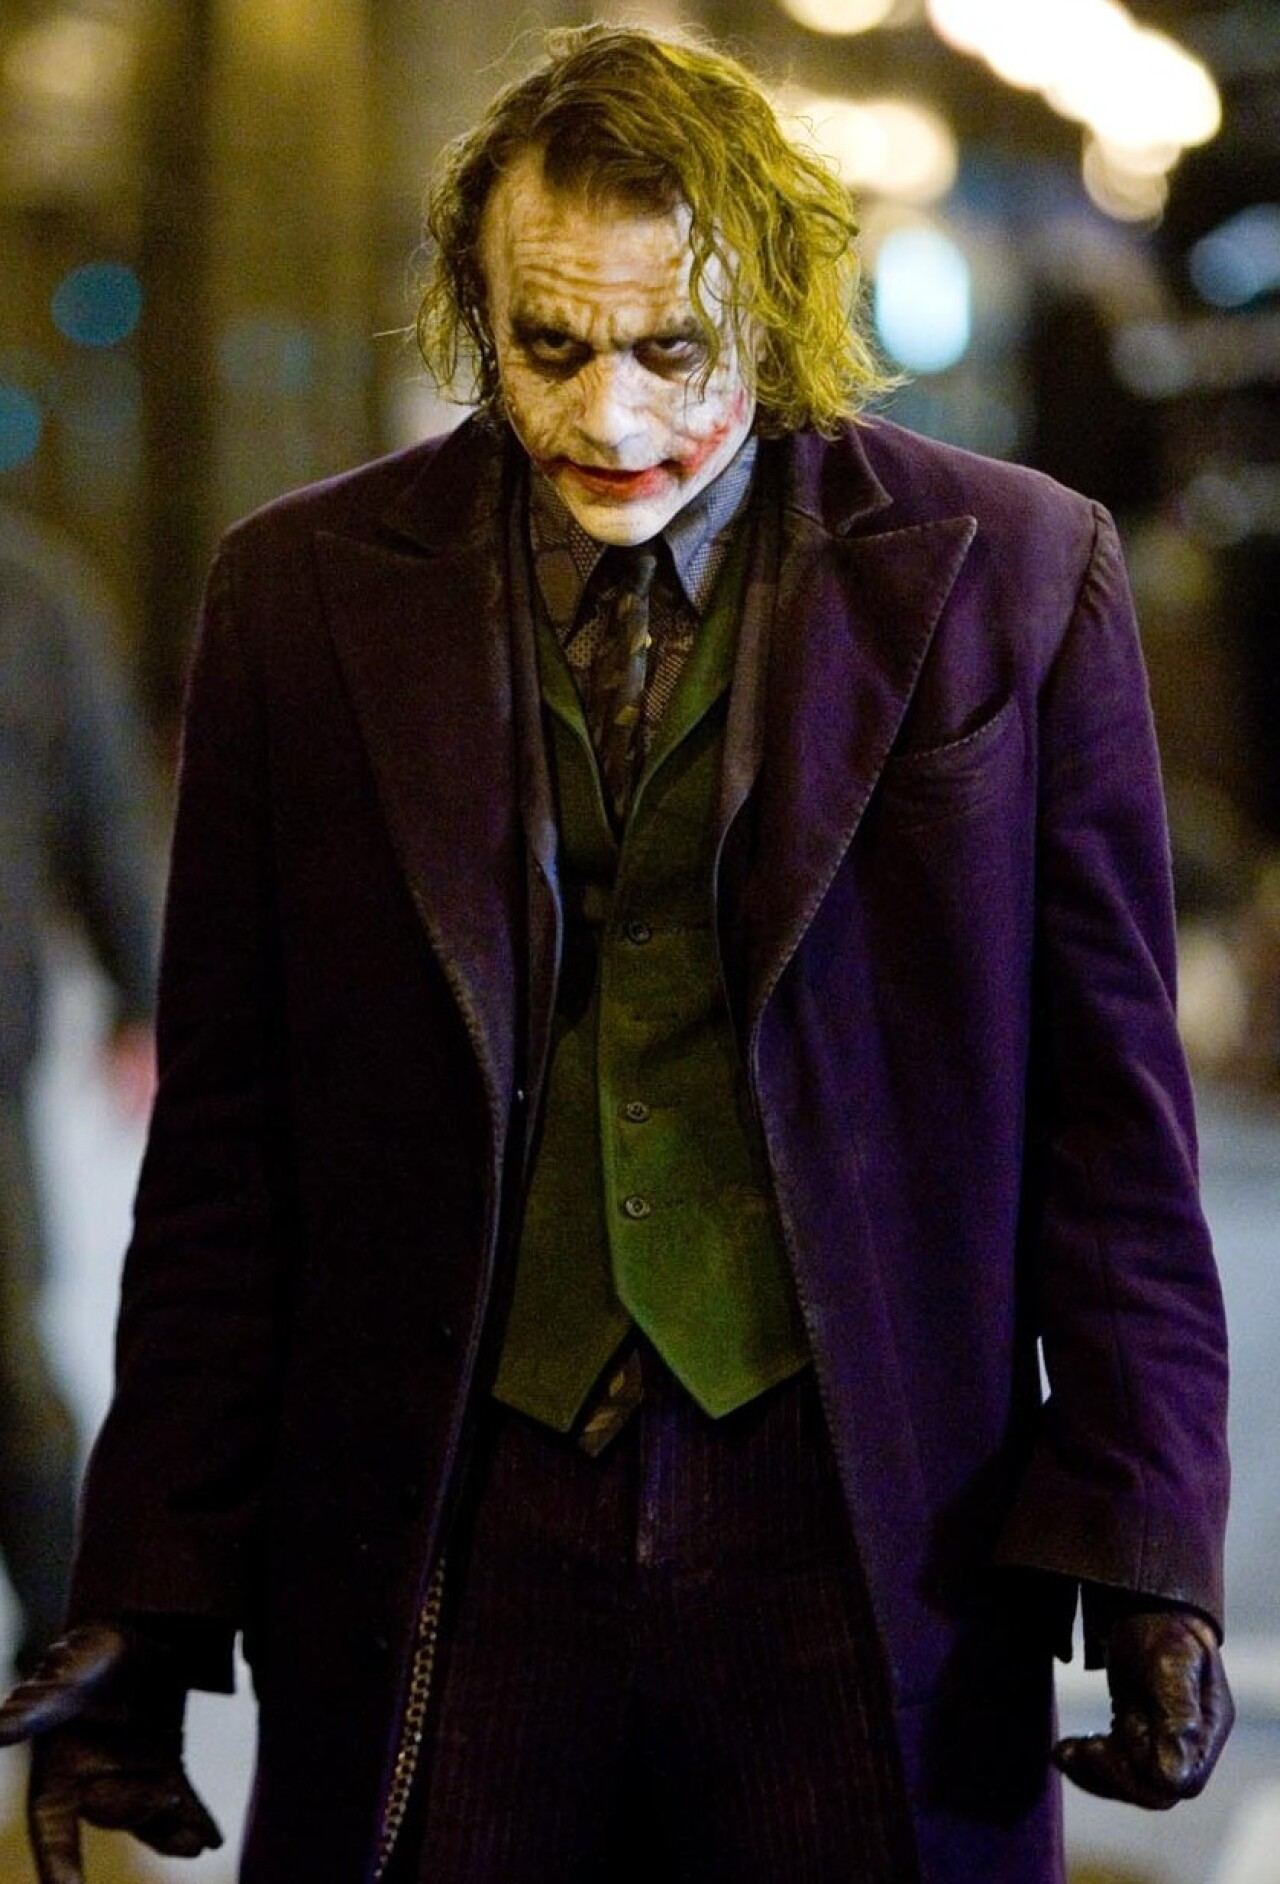 1000+ images about The Joker on Pinterest